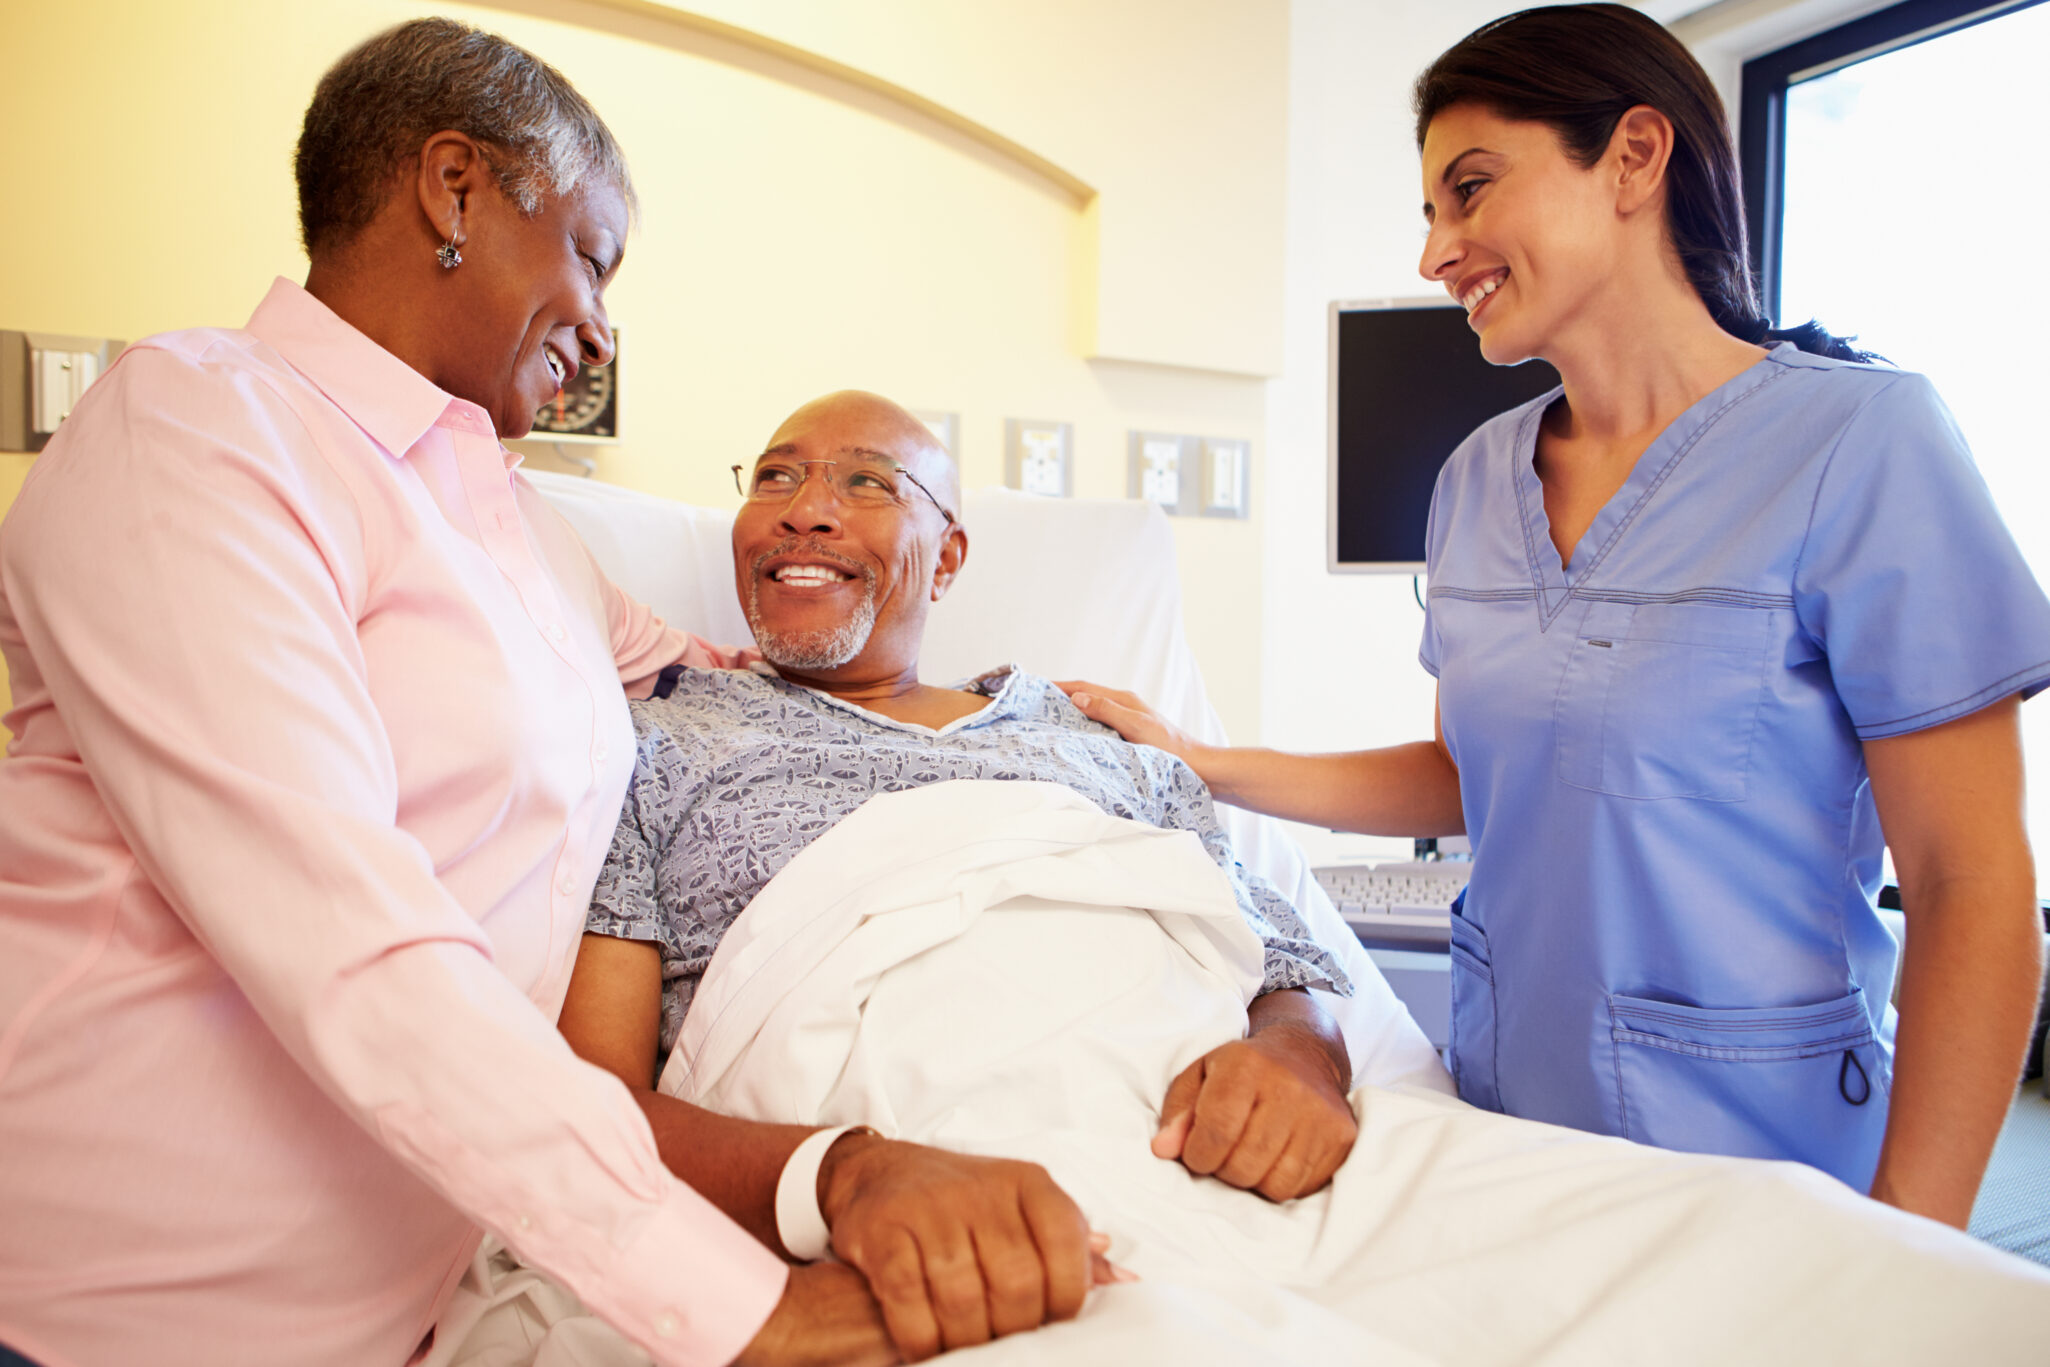 A health care professional checks on a senior man in a skilled nursing facility who is talking with his wife